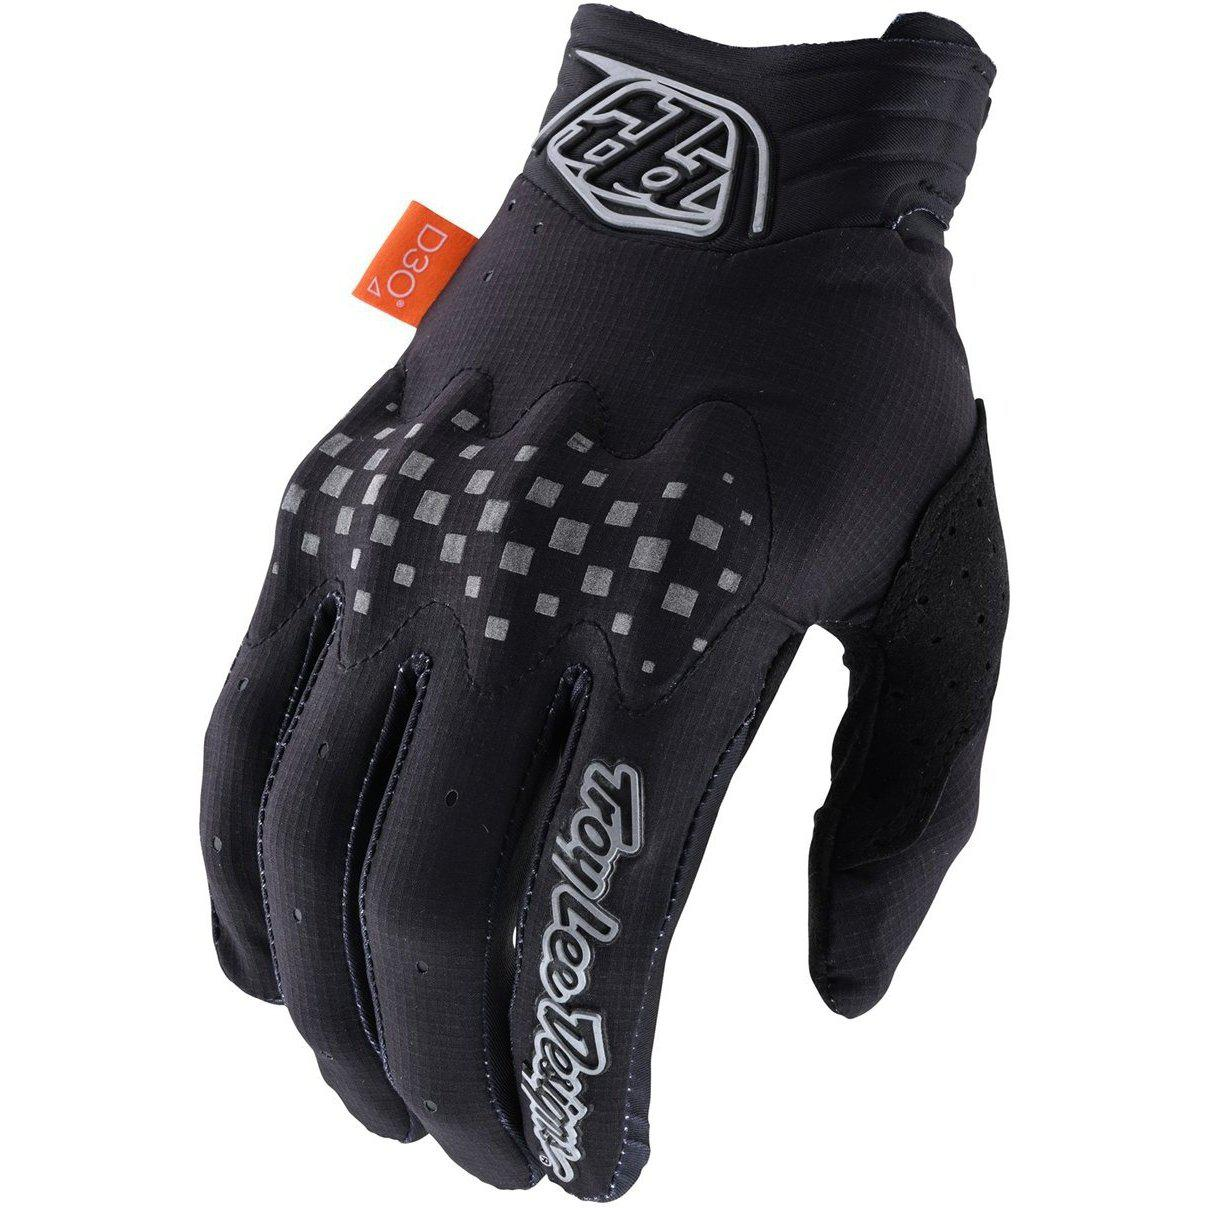 Troy Lee Designs-Troy Lee Designs Gambit Gloves-Black-S-TLD415785002-saddleback-elite-performance-cycling